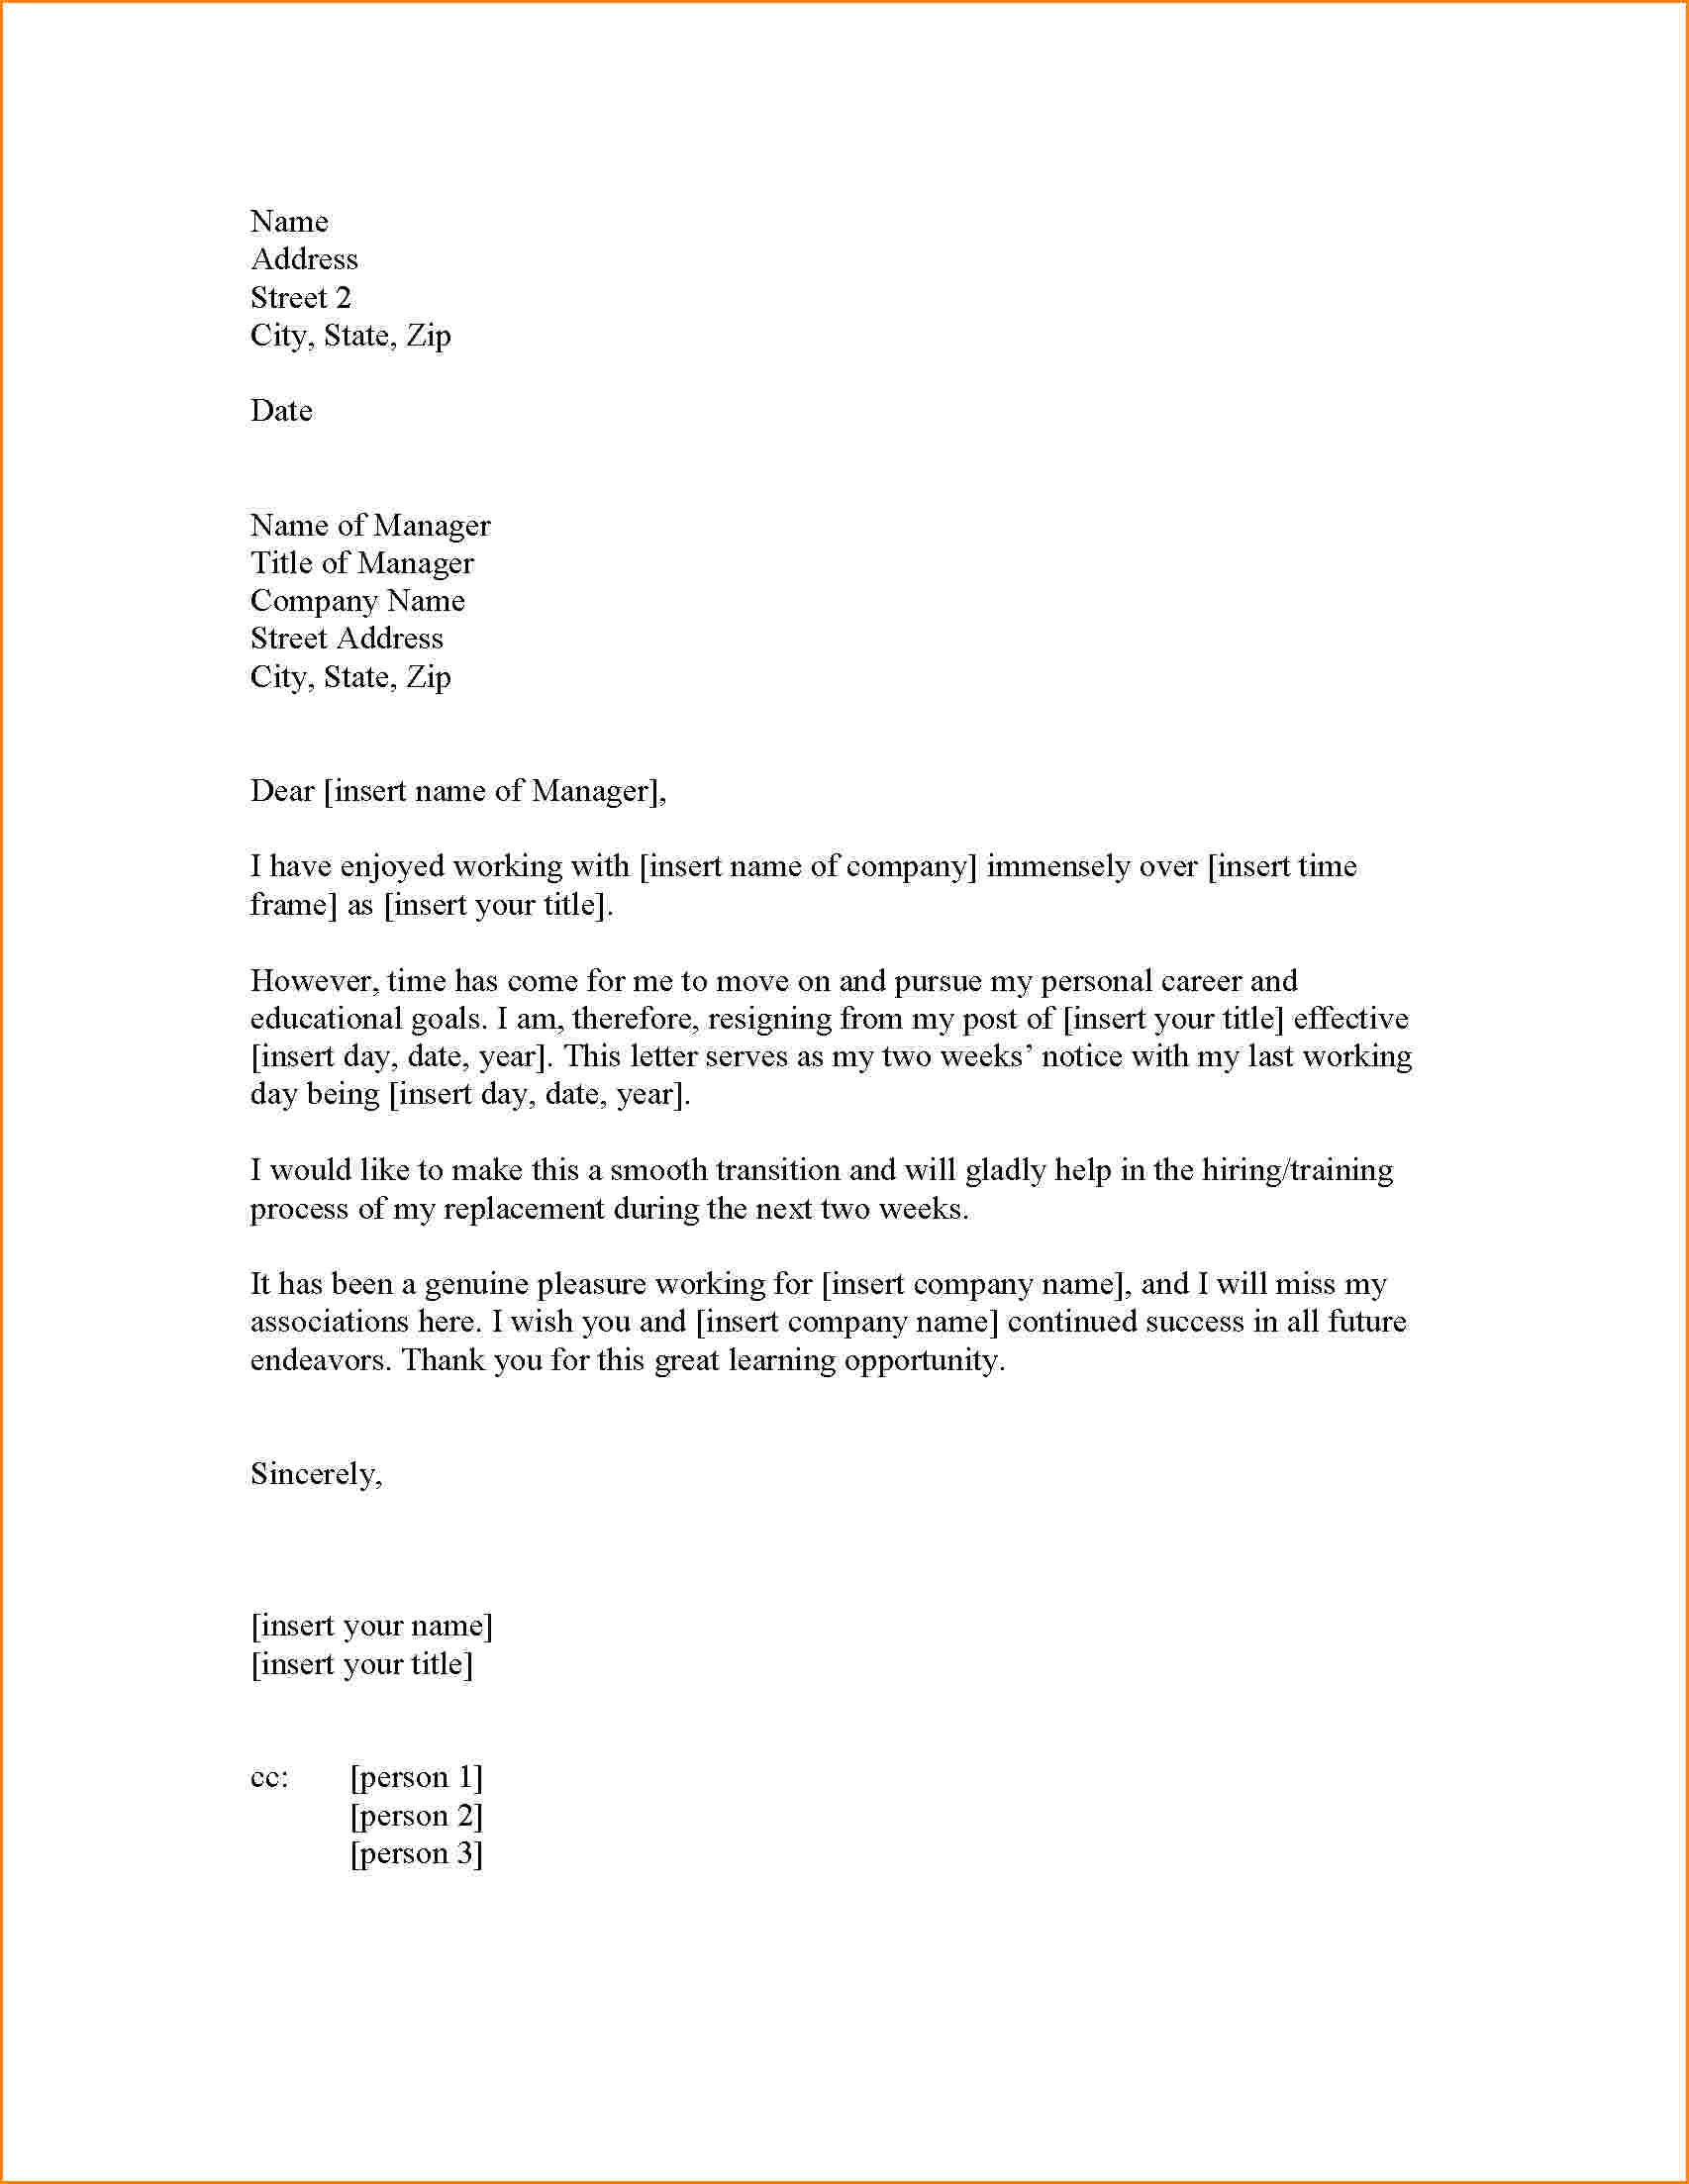 Resignation letter two weeks notice images about resignation letter resignation letter two weeks notice images about resignation letter feebd of vs 2 weeks notice example two pdf free rn formal simple sample retail template thecheapjerseys Choice Image